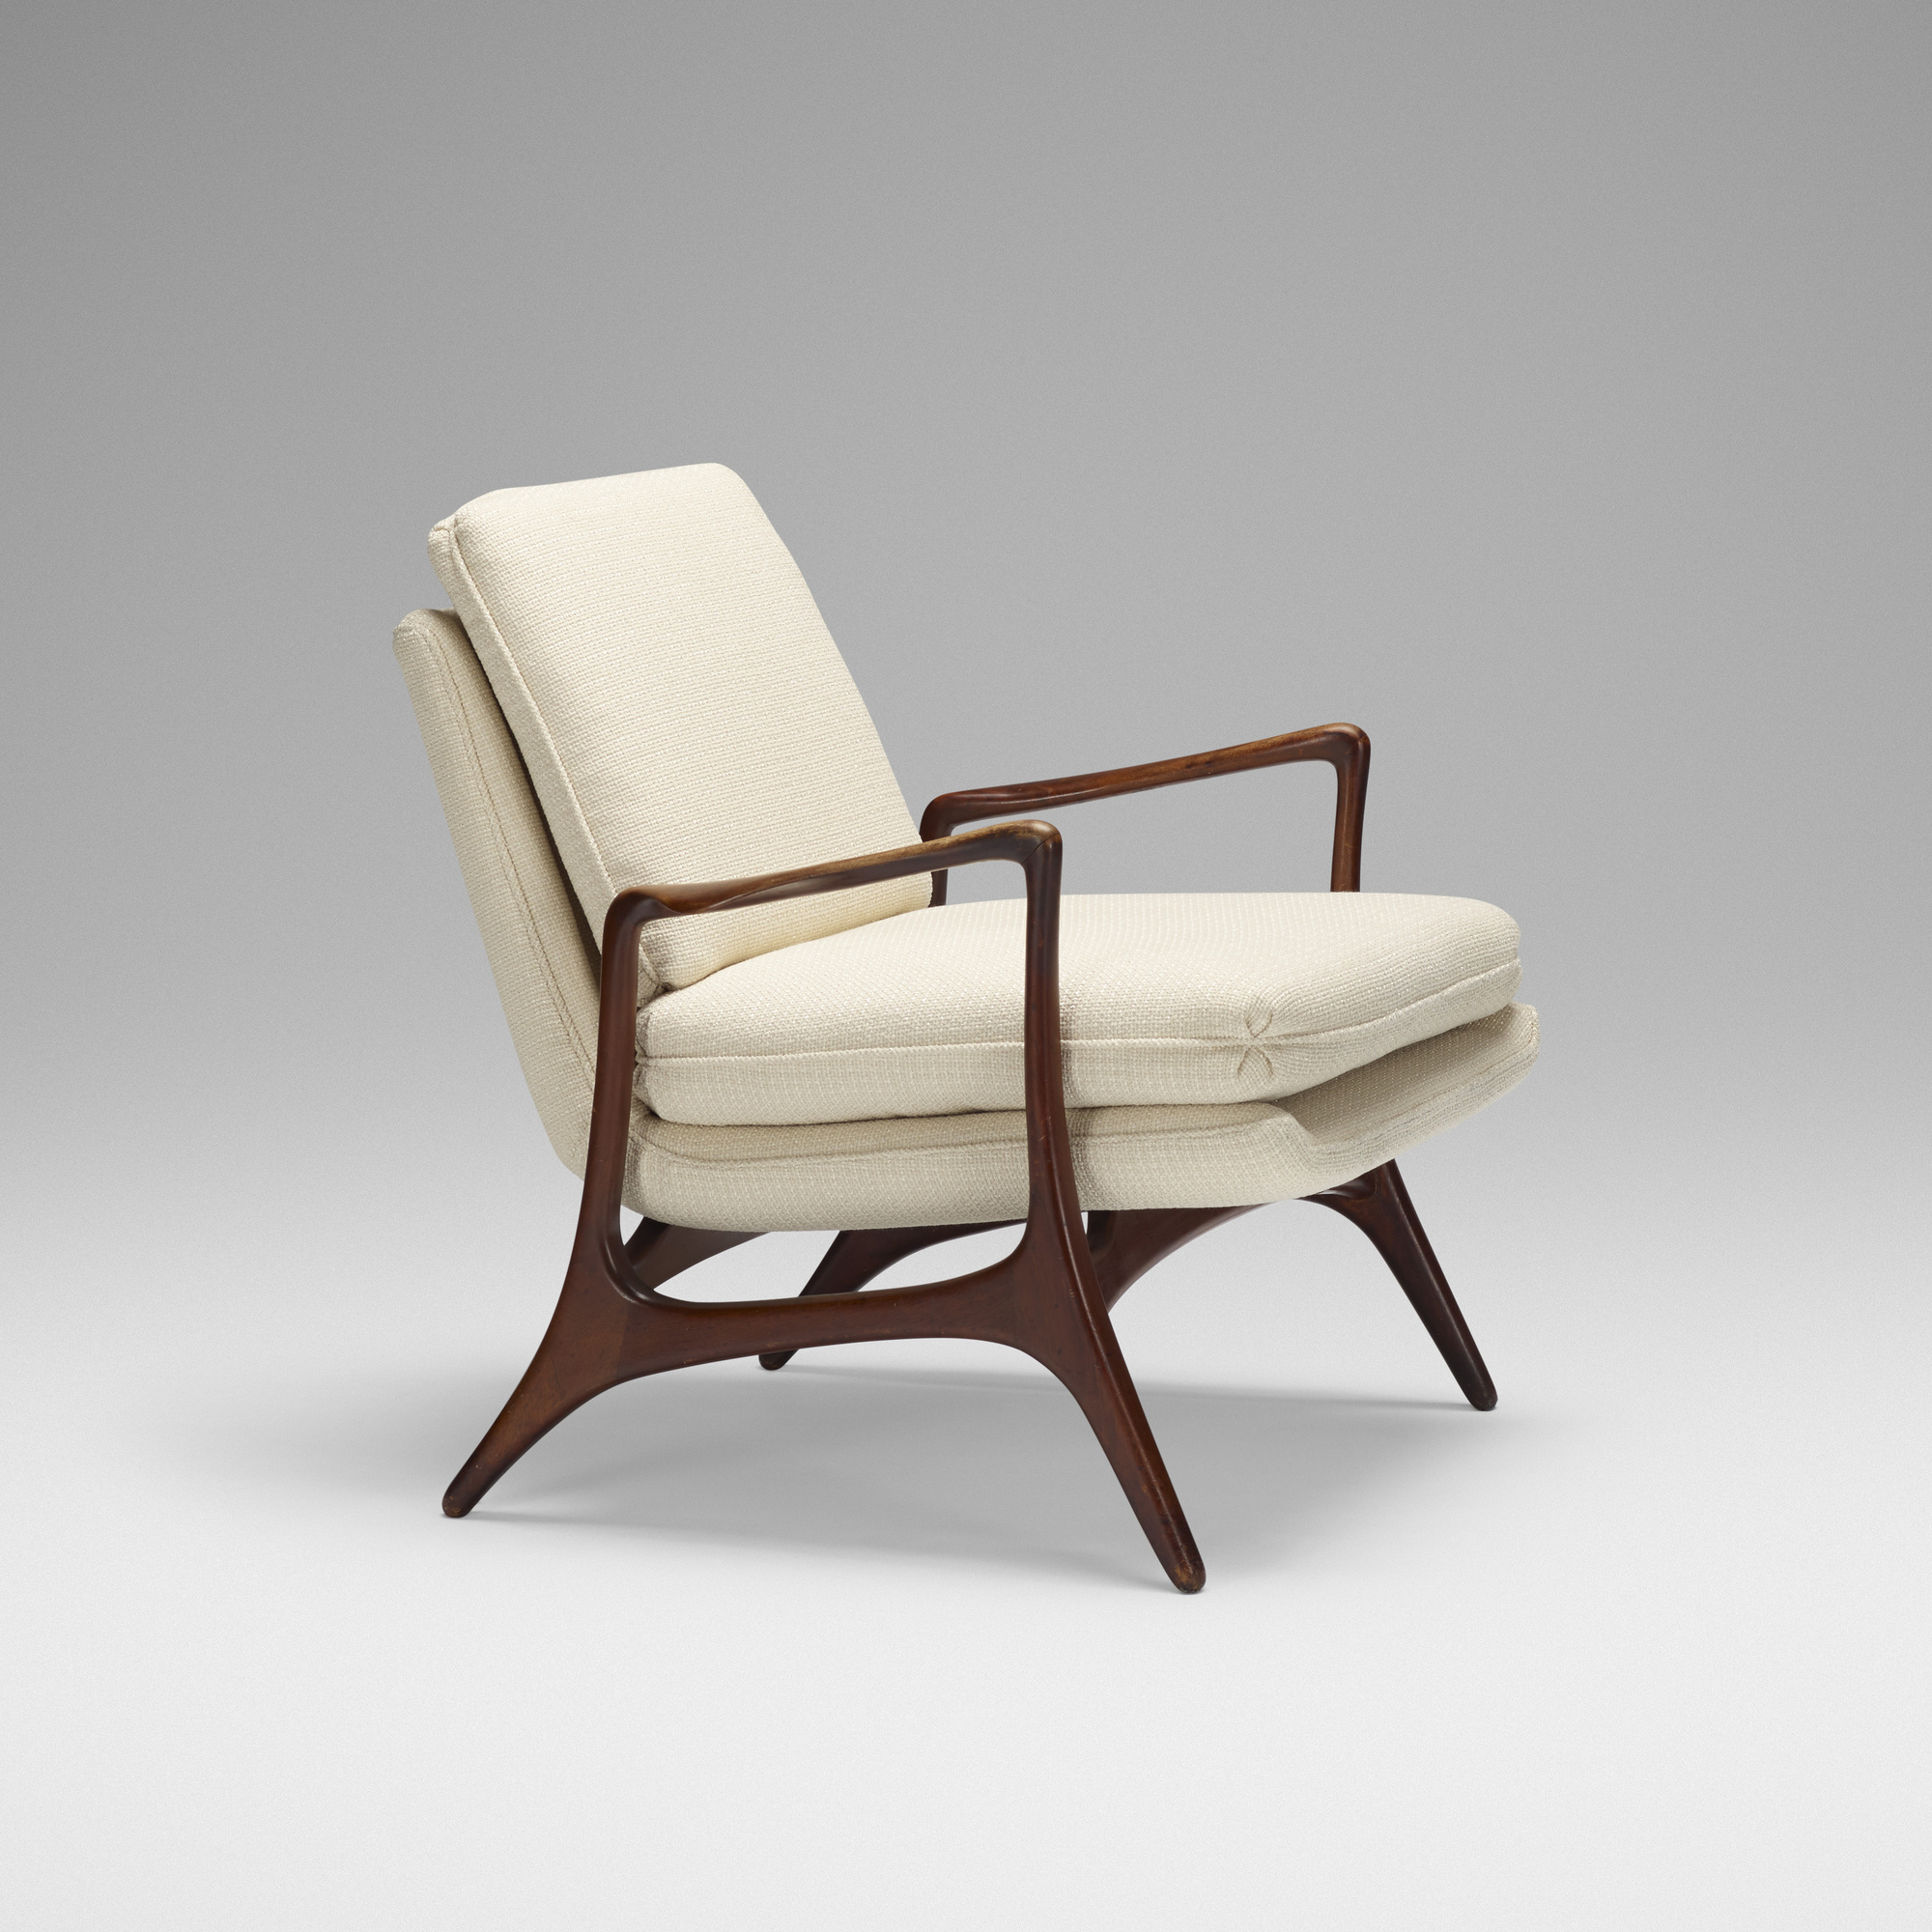 231: Vladimir Kagan / Lounge Chair (1 Of 3)